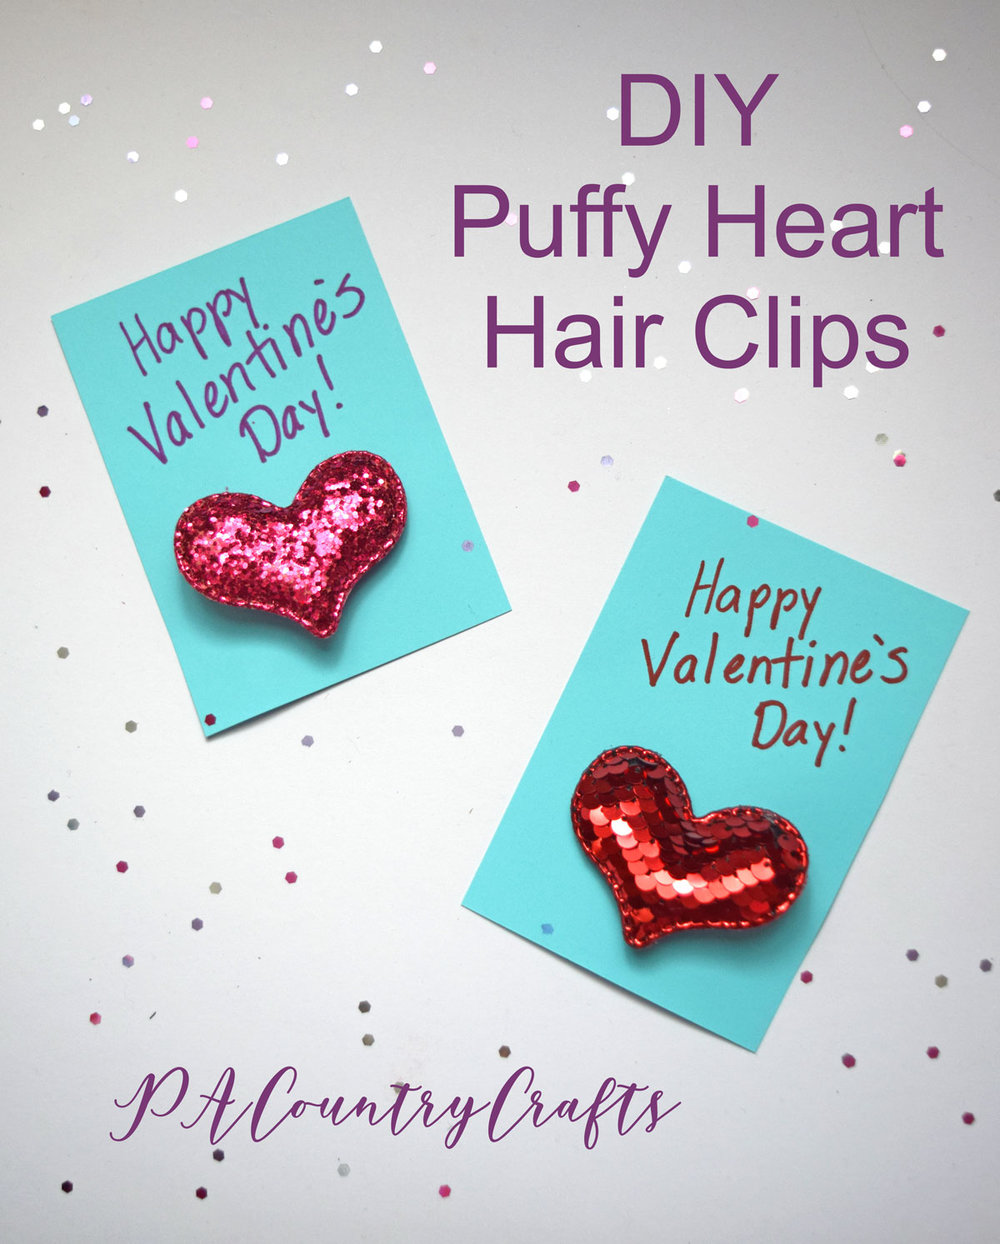 DIY Puffy Heart Hair Clips